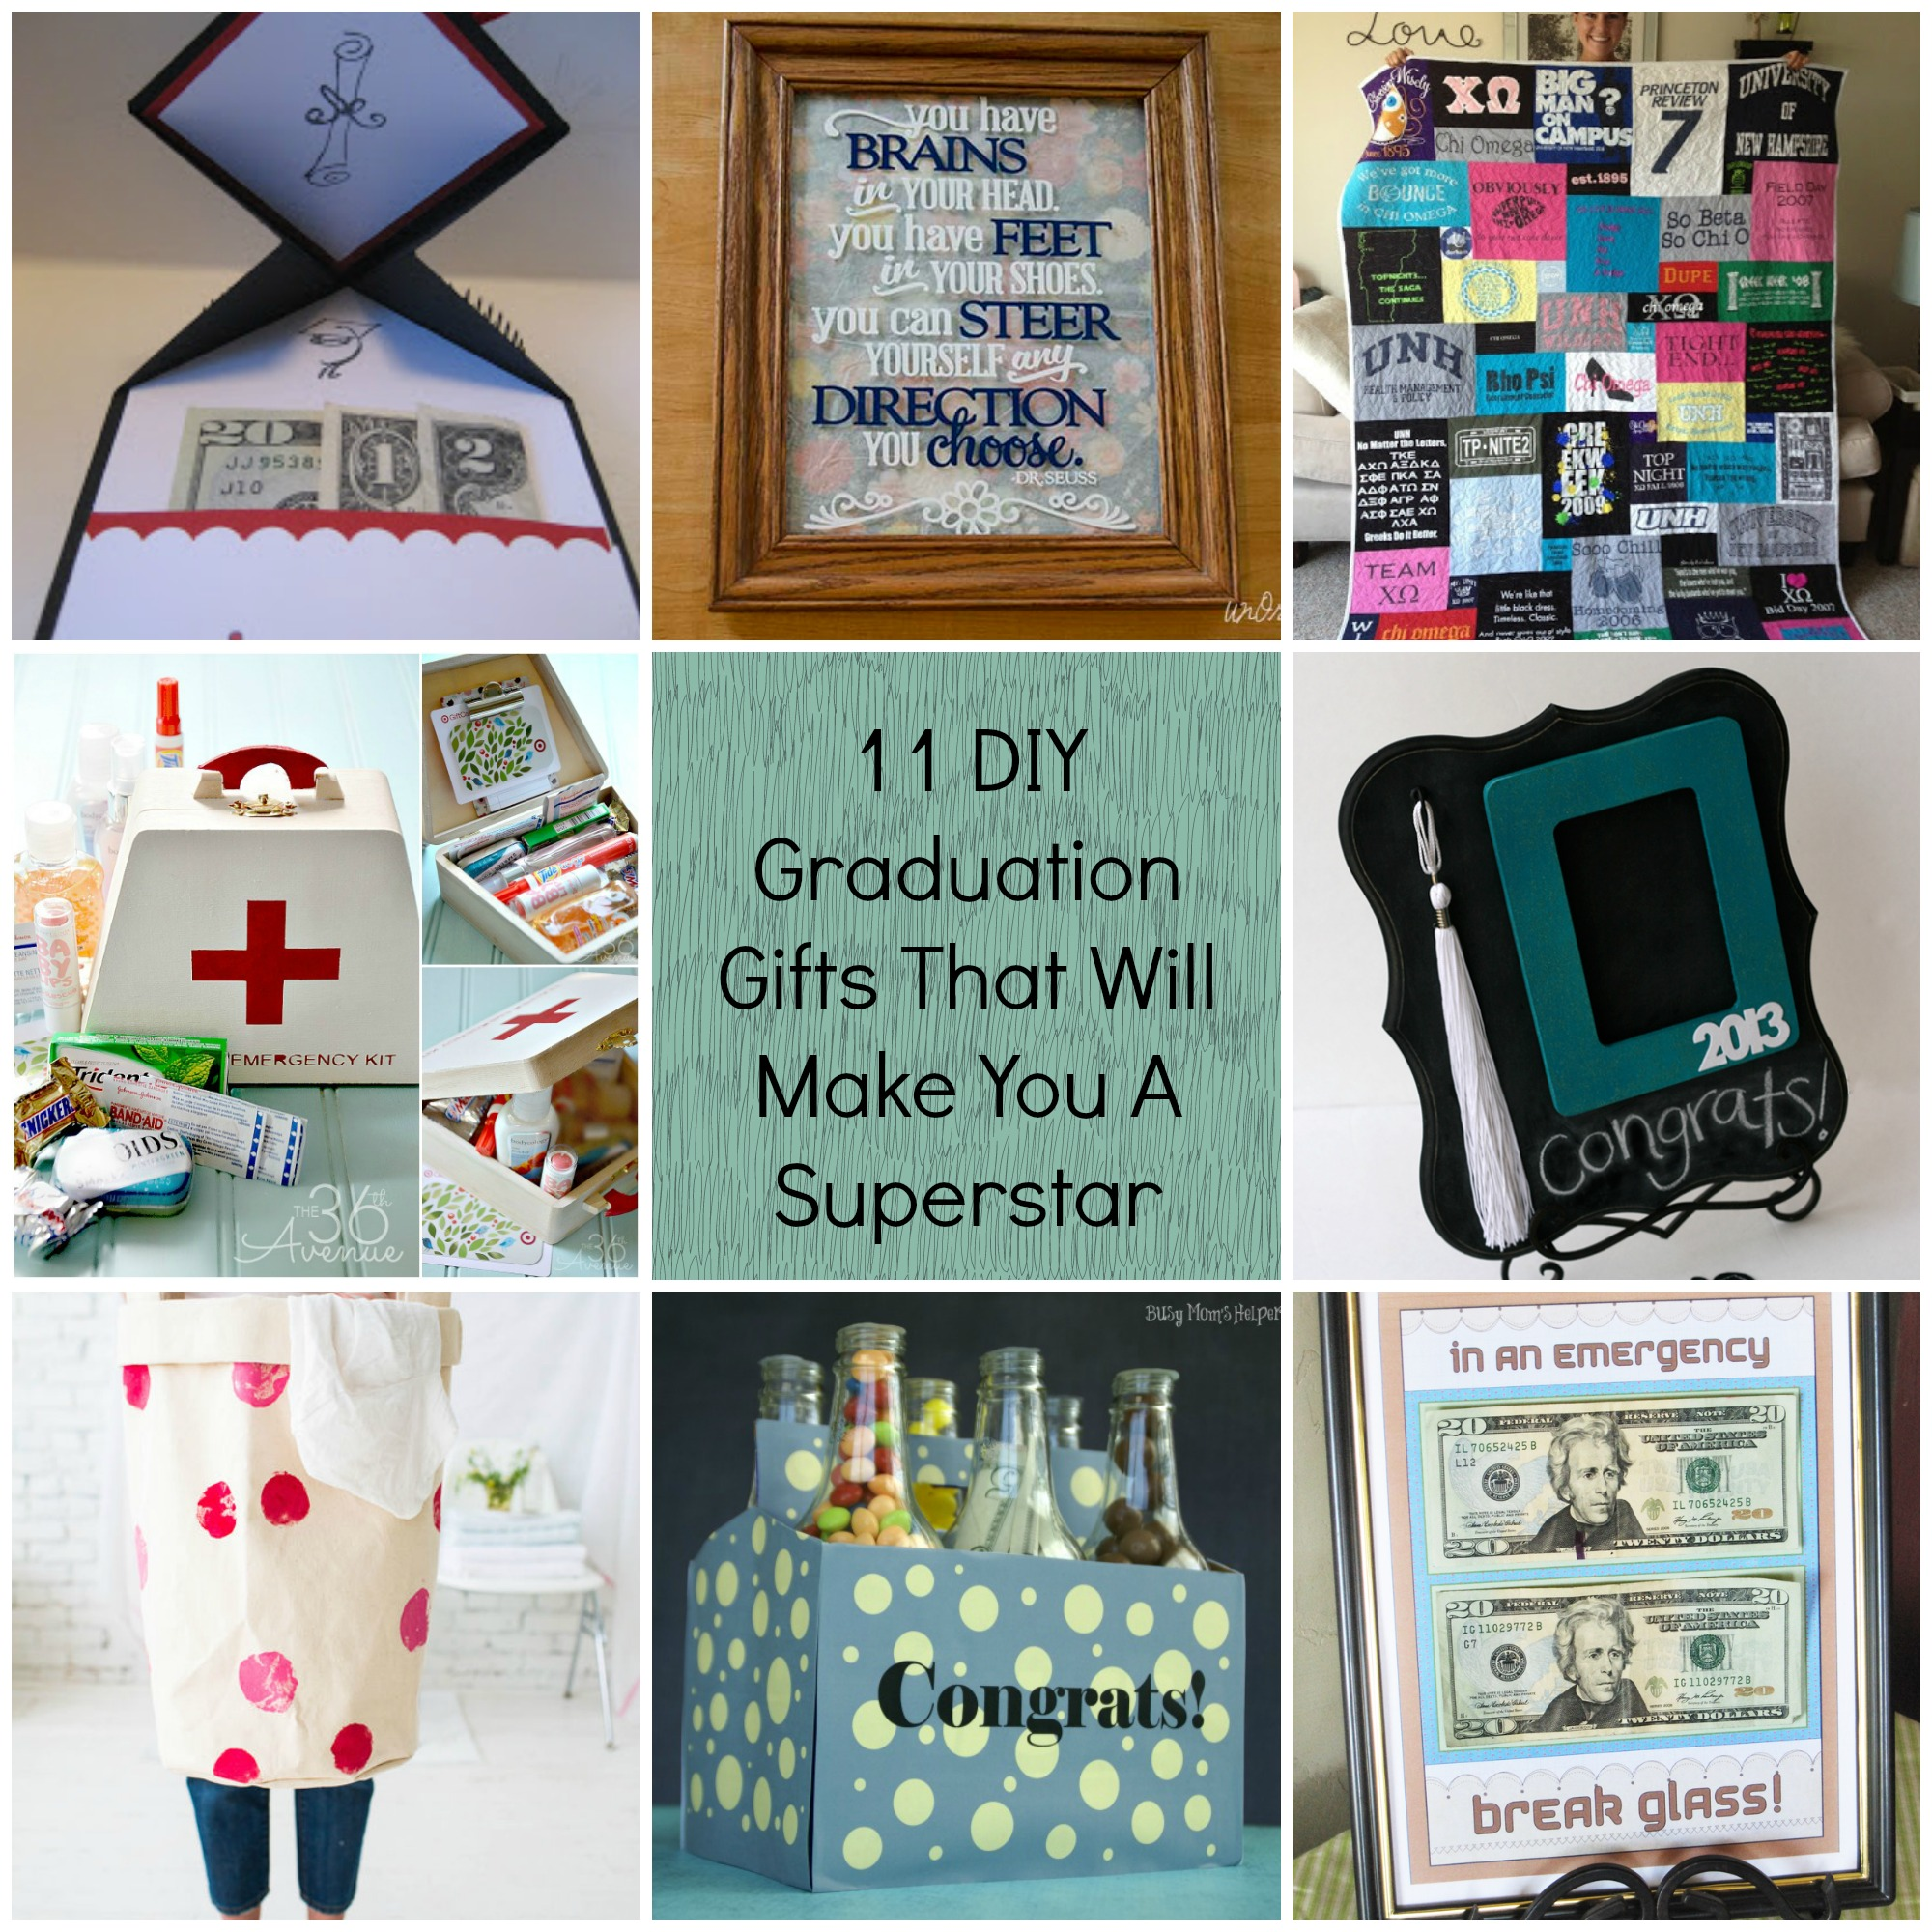 11 DIY Graduation Gifts That Will Make You A Superstar fb : graduation gifts for mom - medton.org